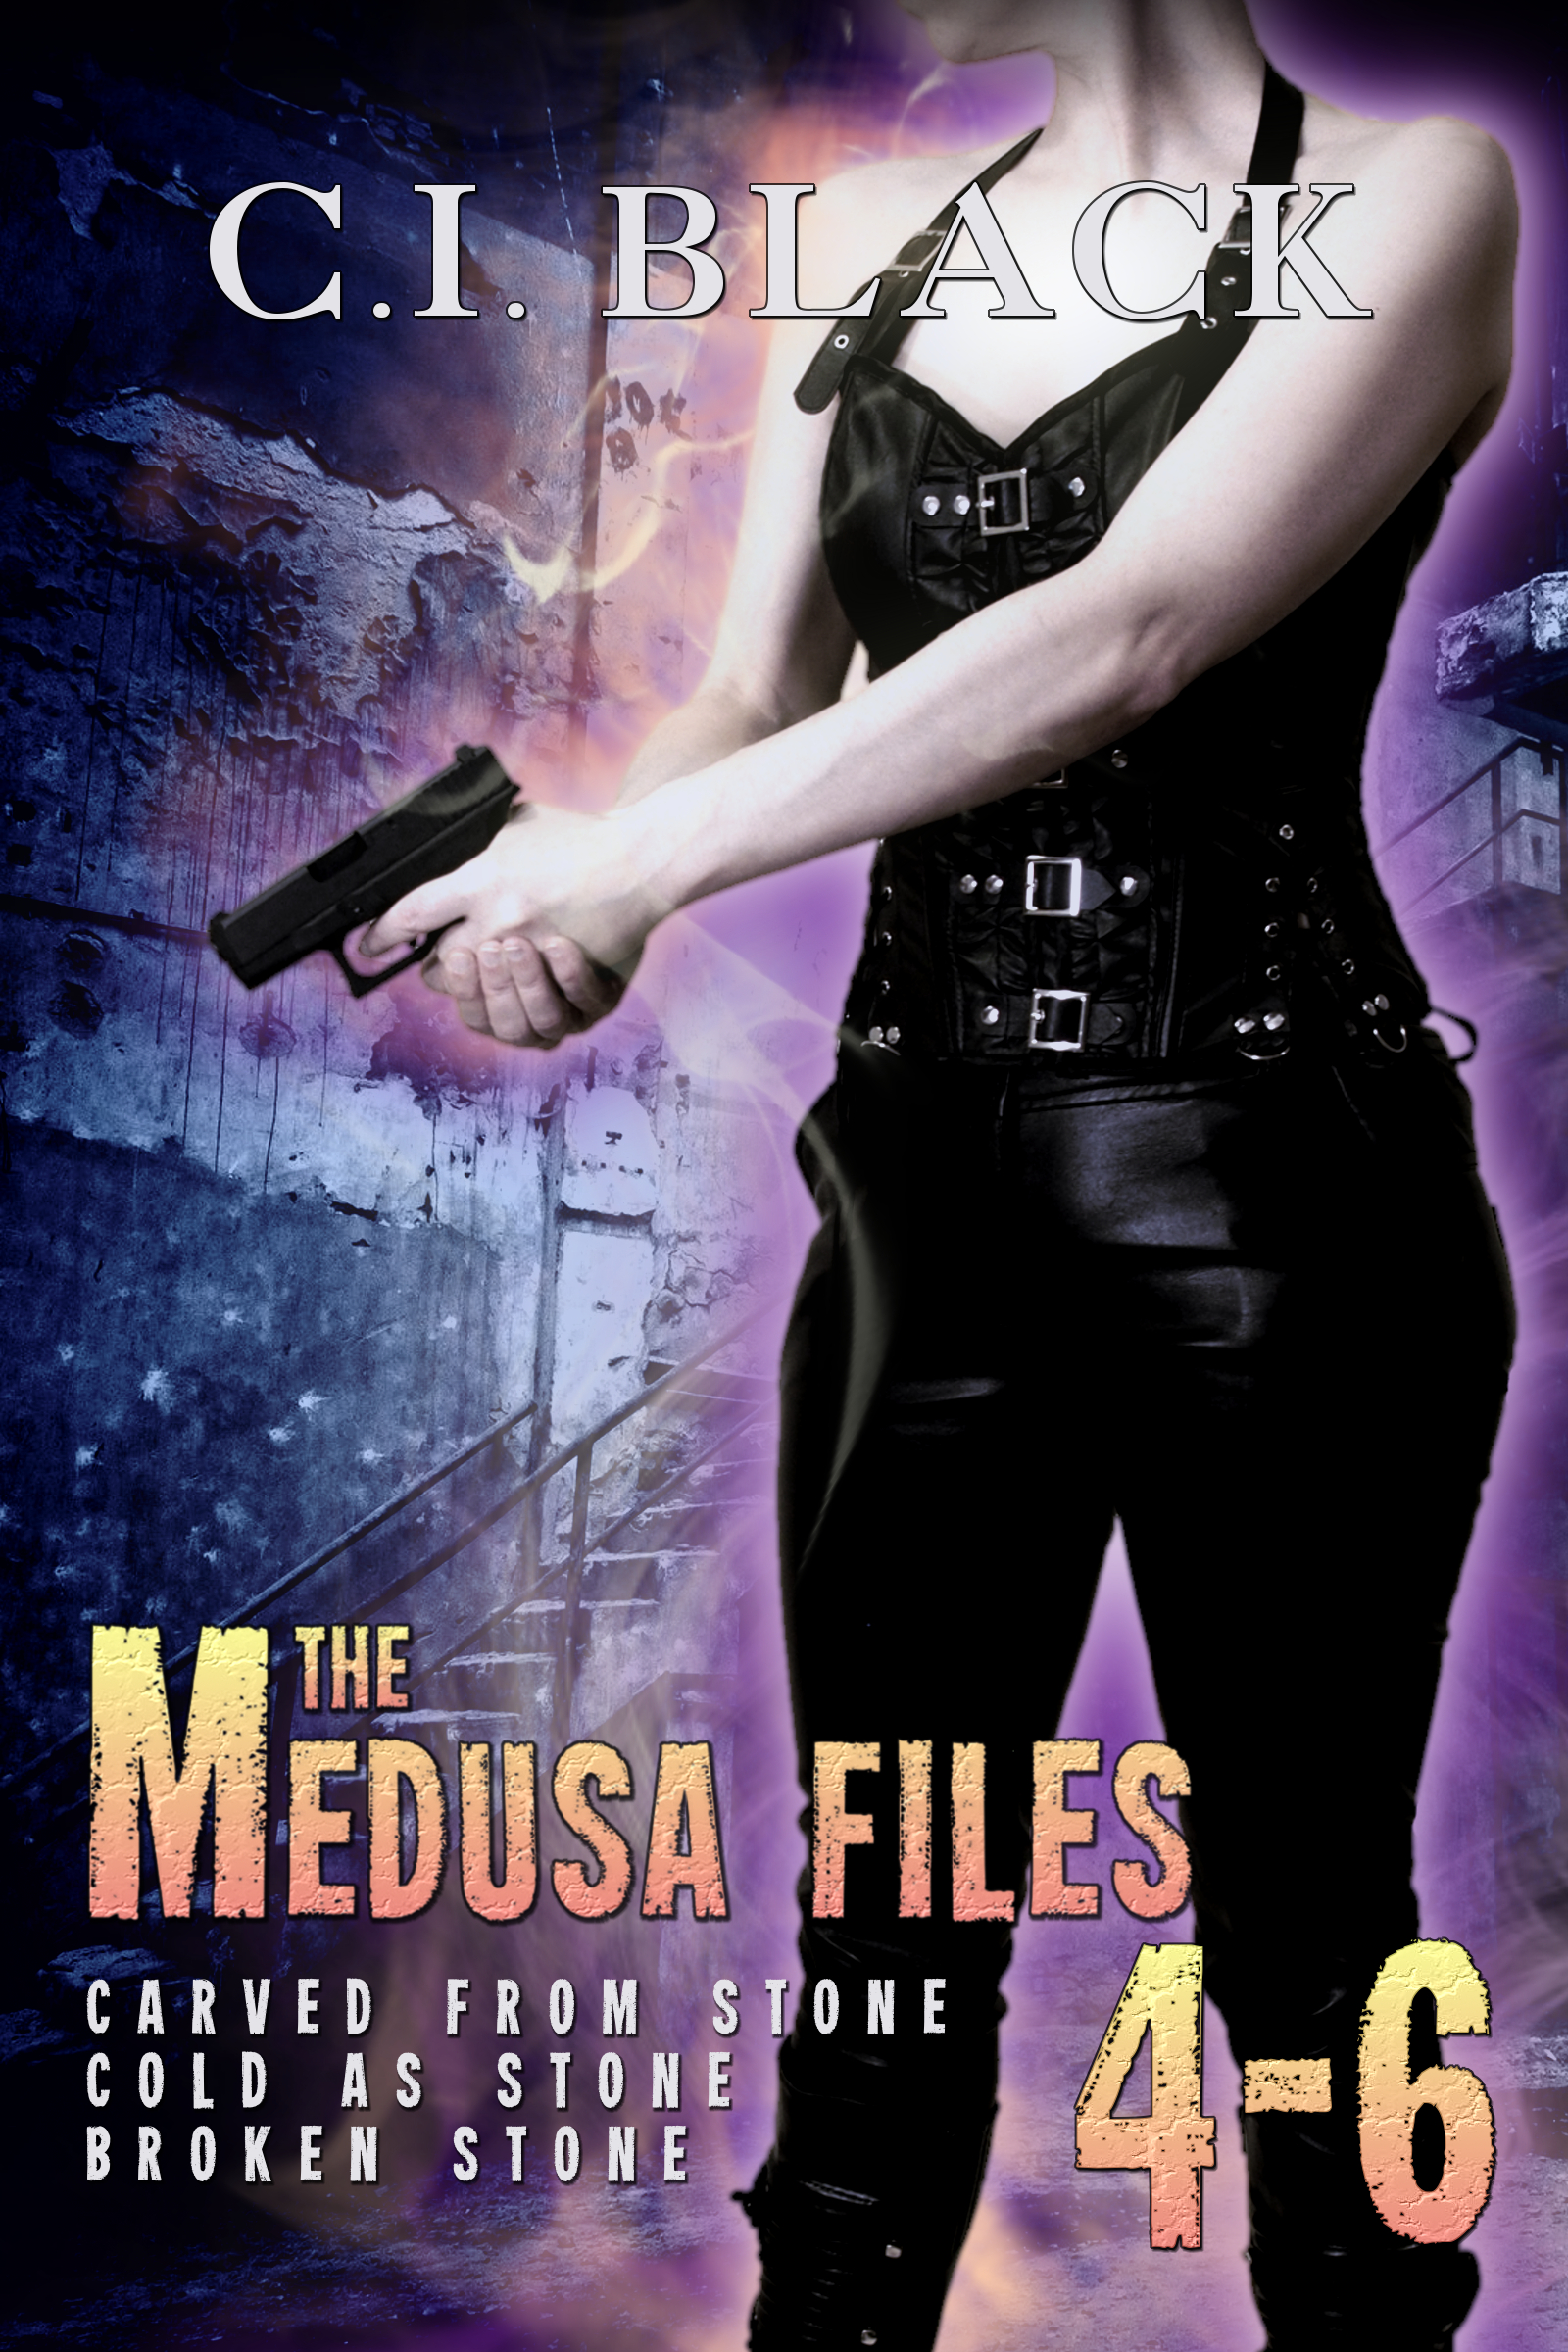 Medusa Files Collection 4 5 6 an urban fantasy / paranormal romance series by C.I. Black